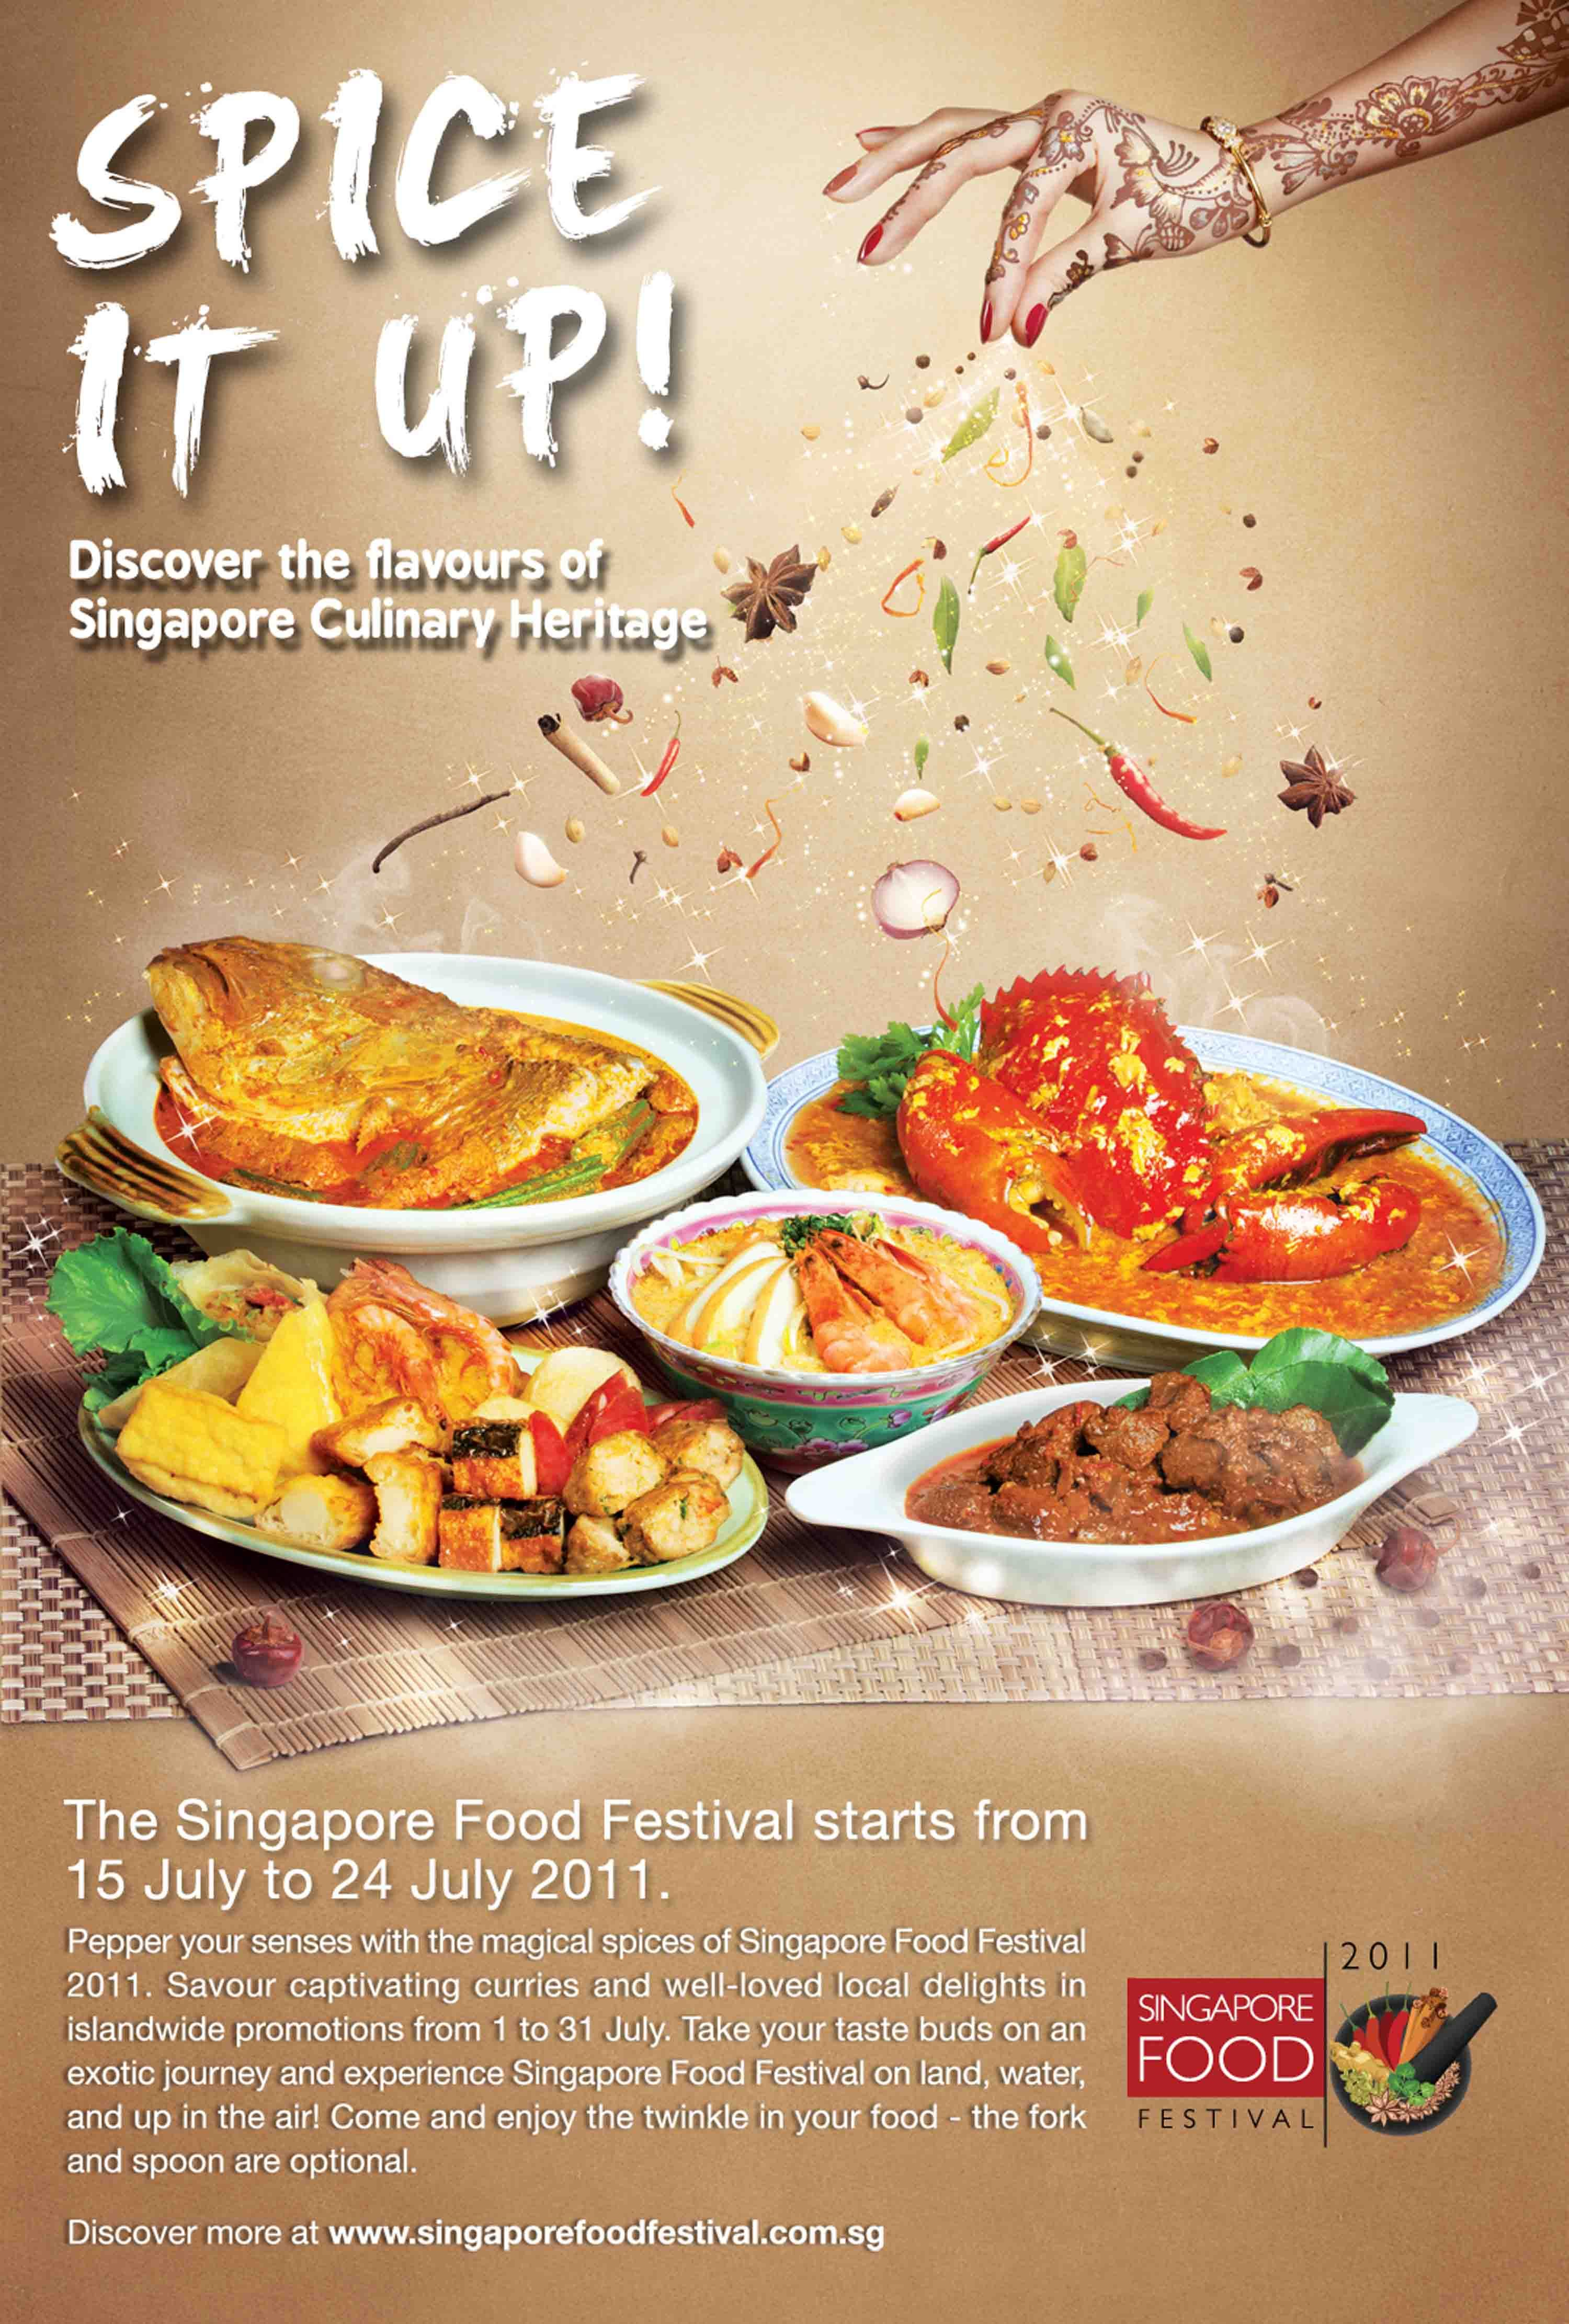 Asian Food Festival Poster Google Search My Likes Electronic Circuits Diagramselectronics Projects Designshobby